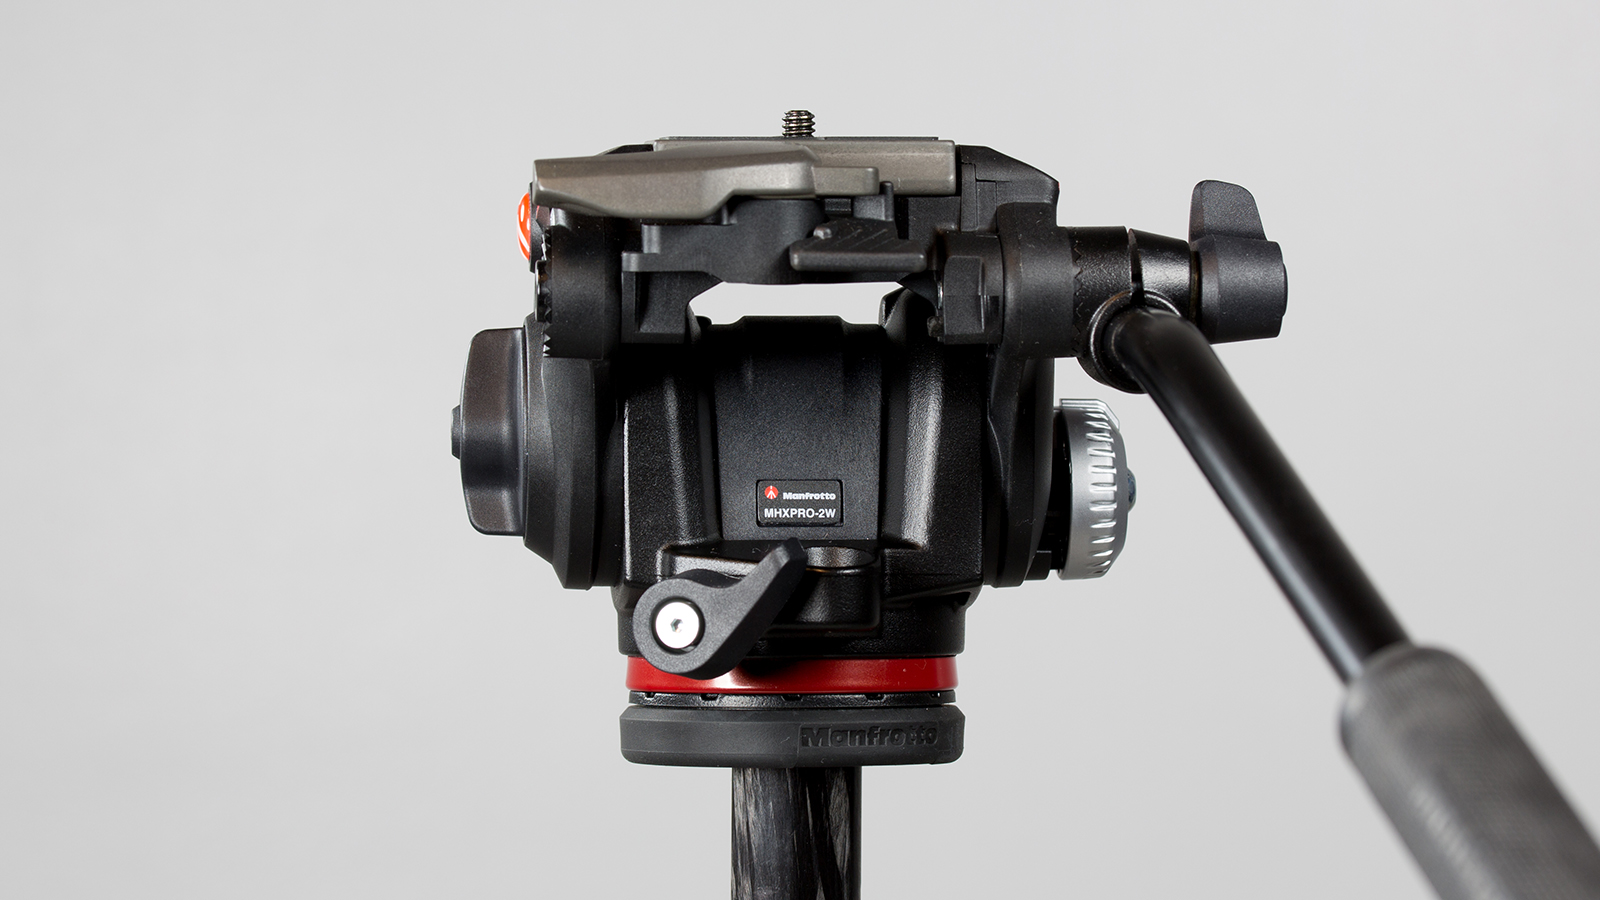 Manfrotto-MHXPRO-2W-DT-013-statiivil